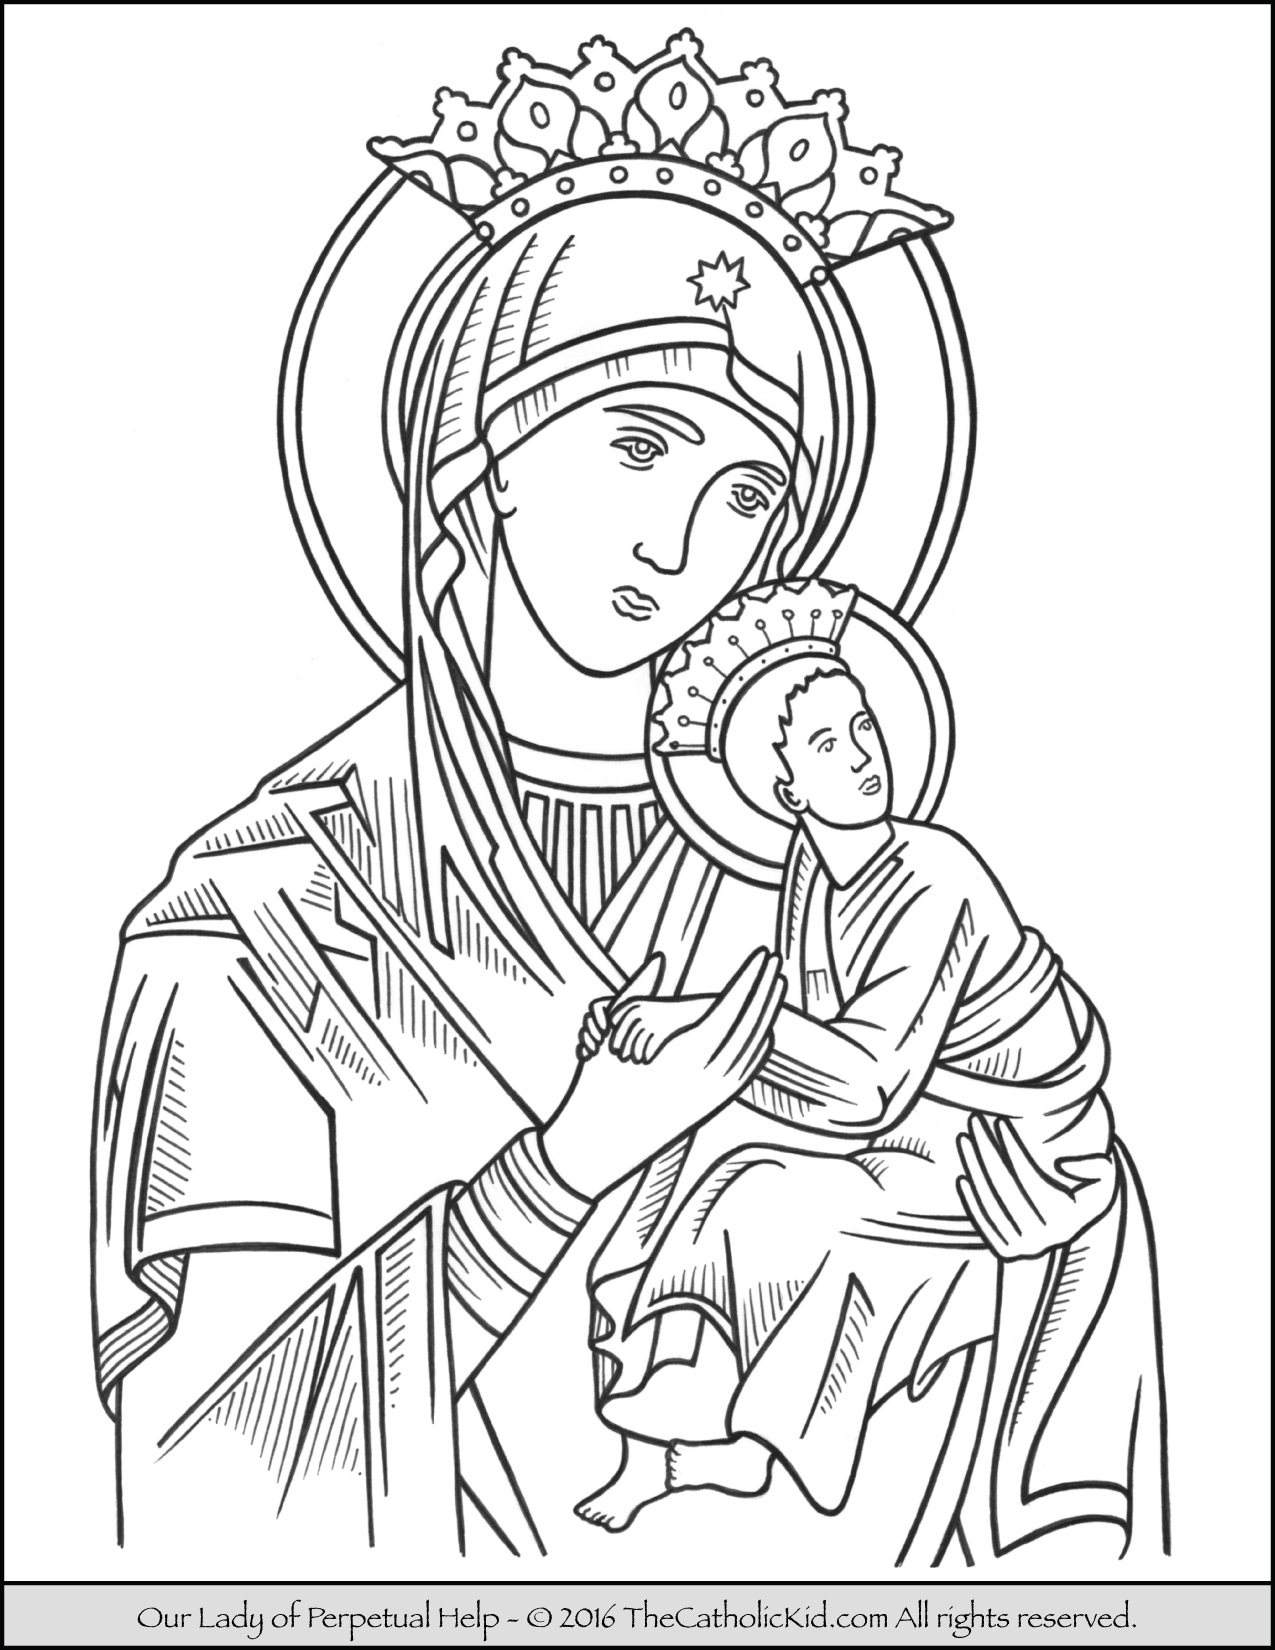 Catholic Drawing at GetDrawings.com | Free for personal use Catholic ...